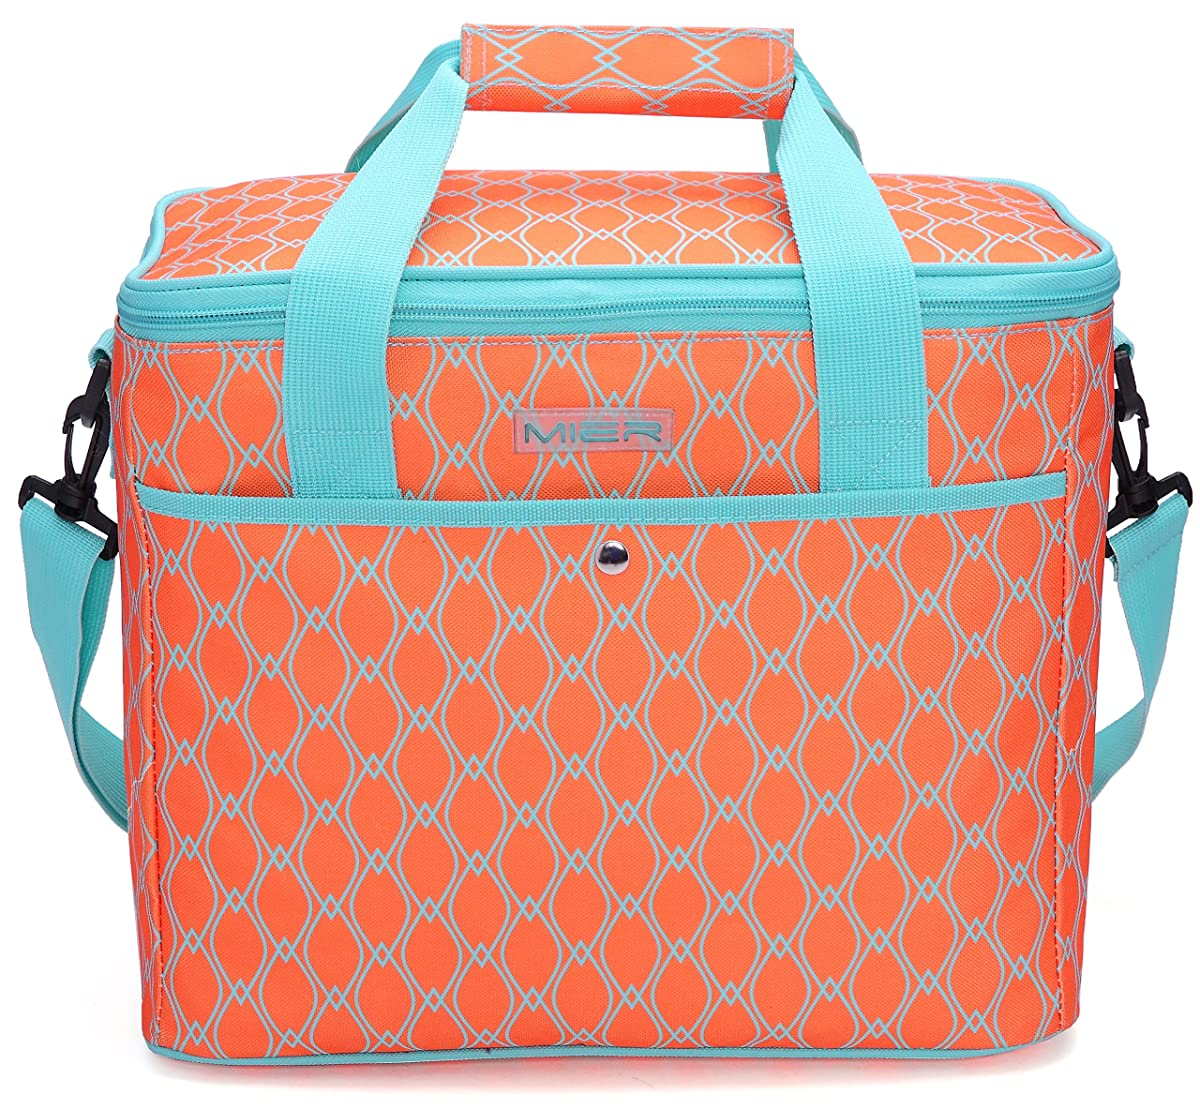 MIER 18L Large Soft Cooler Insulated Picnic Bag for Grocery, Camping, Car, Bright Orange Color